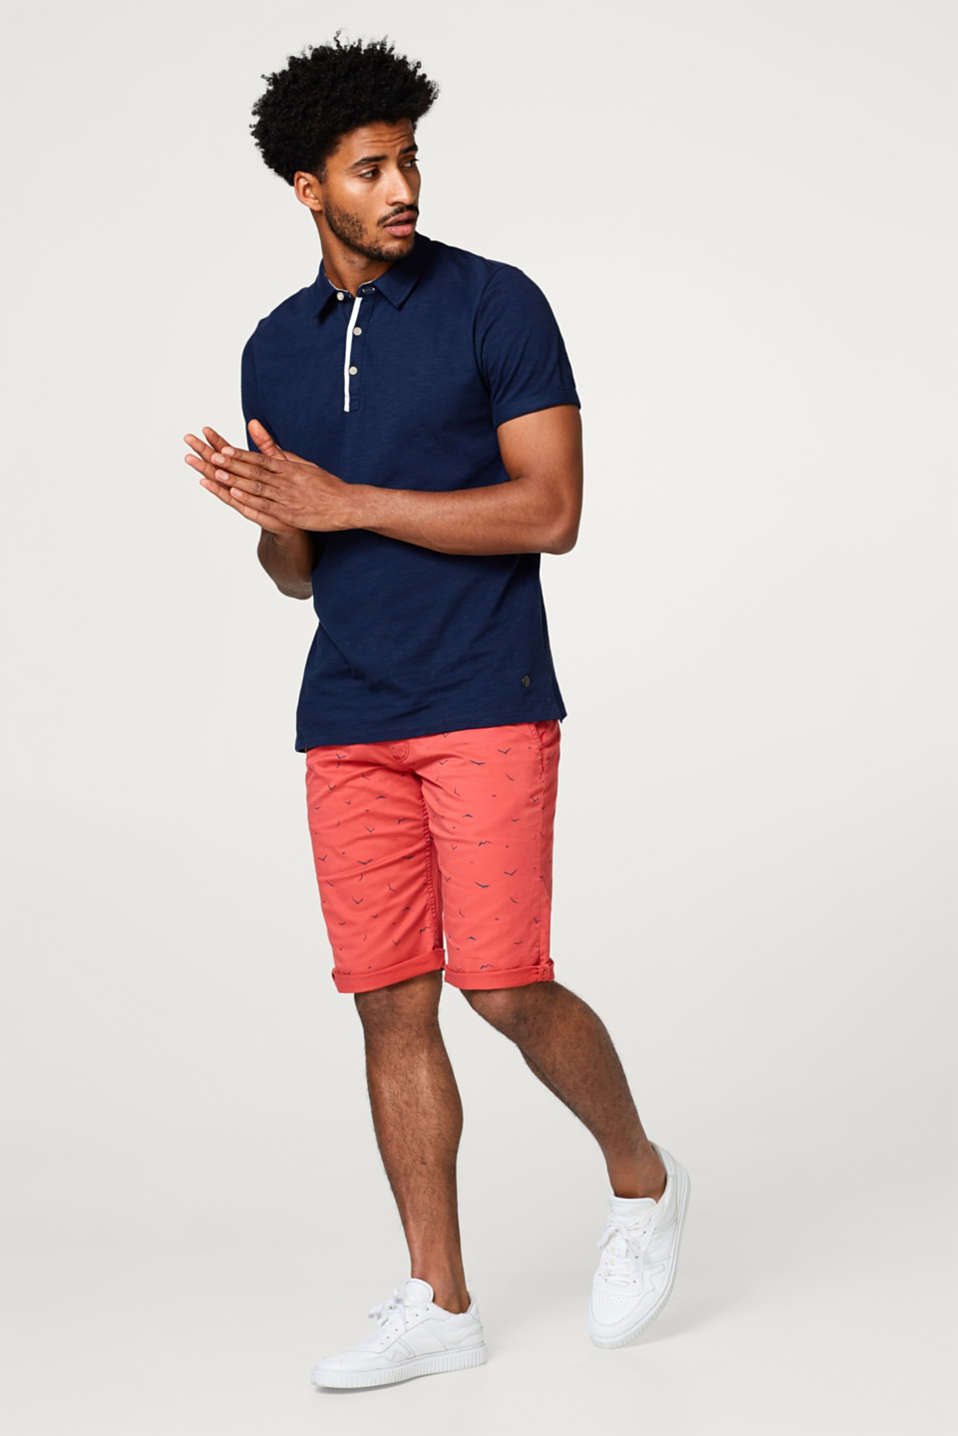 Twill short with a seagull print and stretch